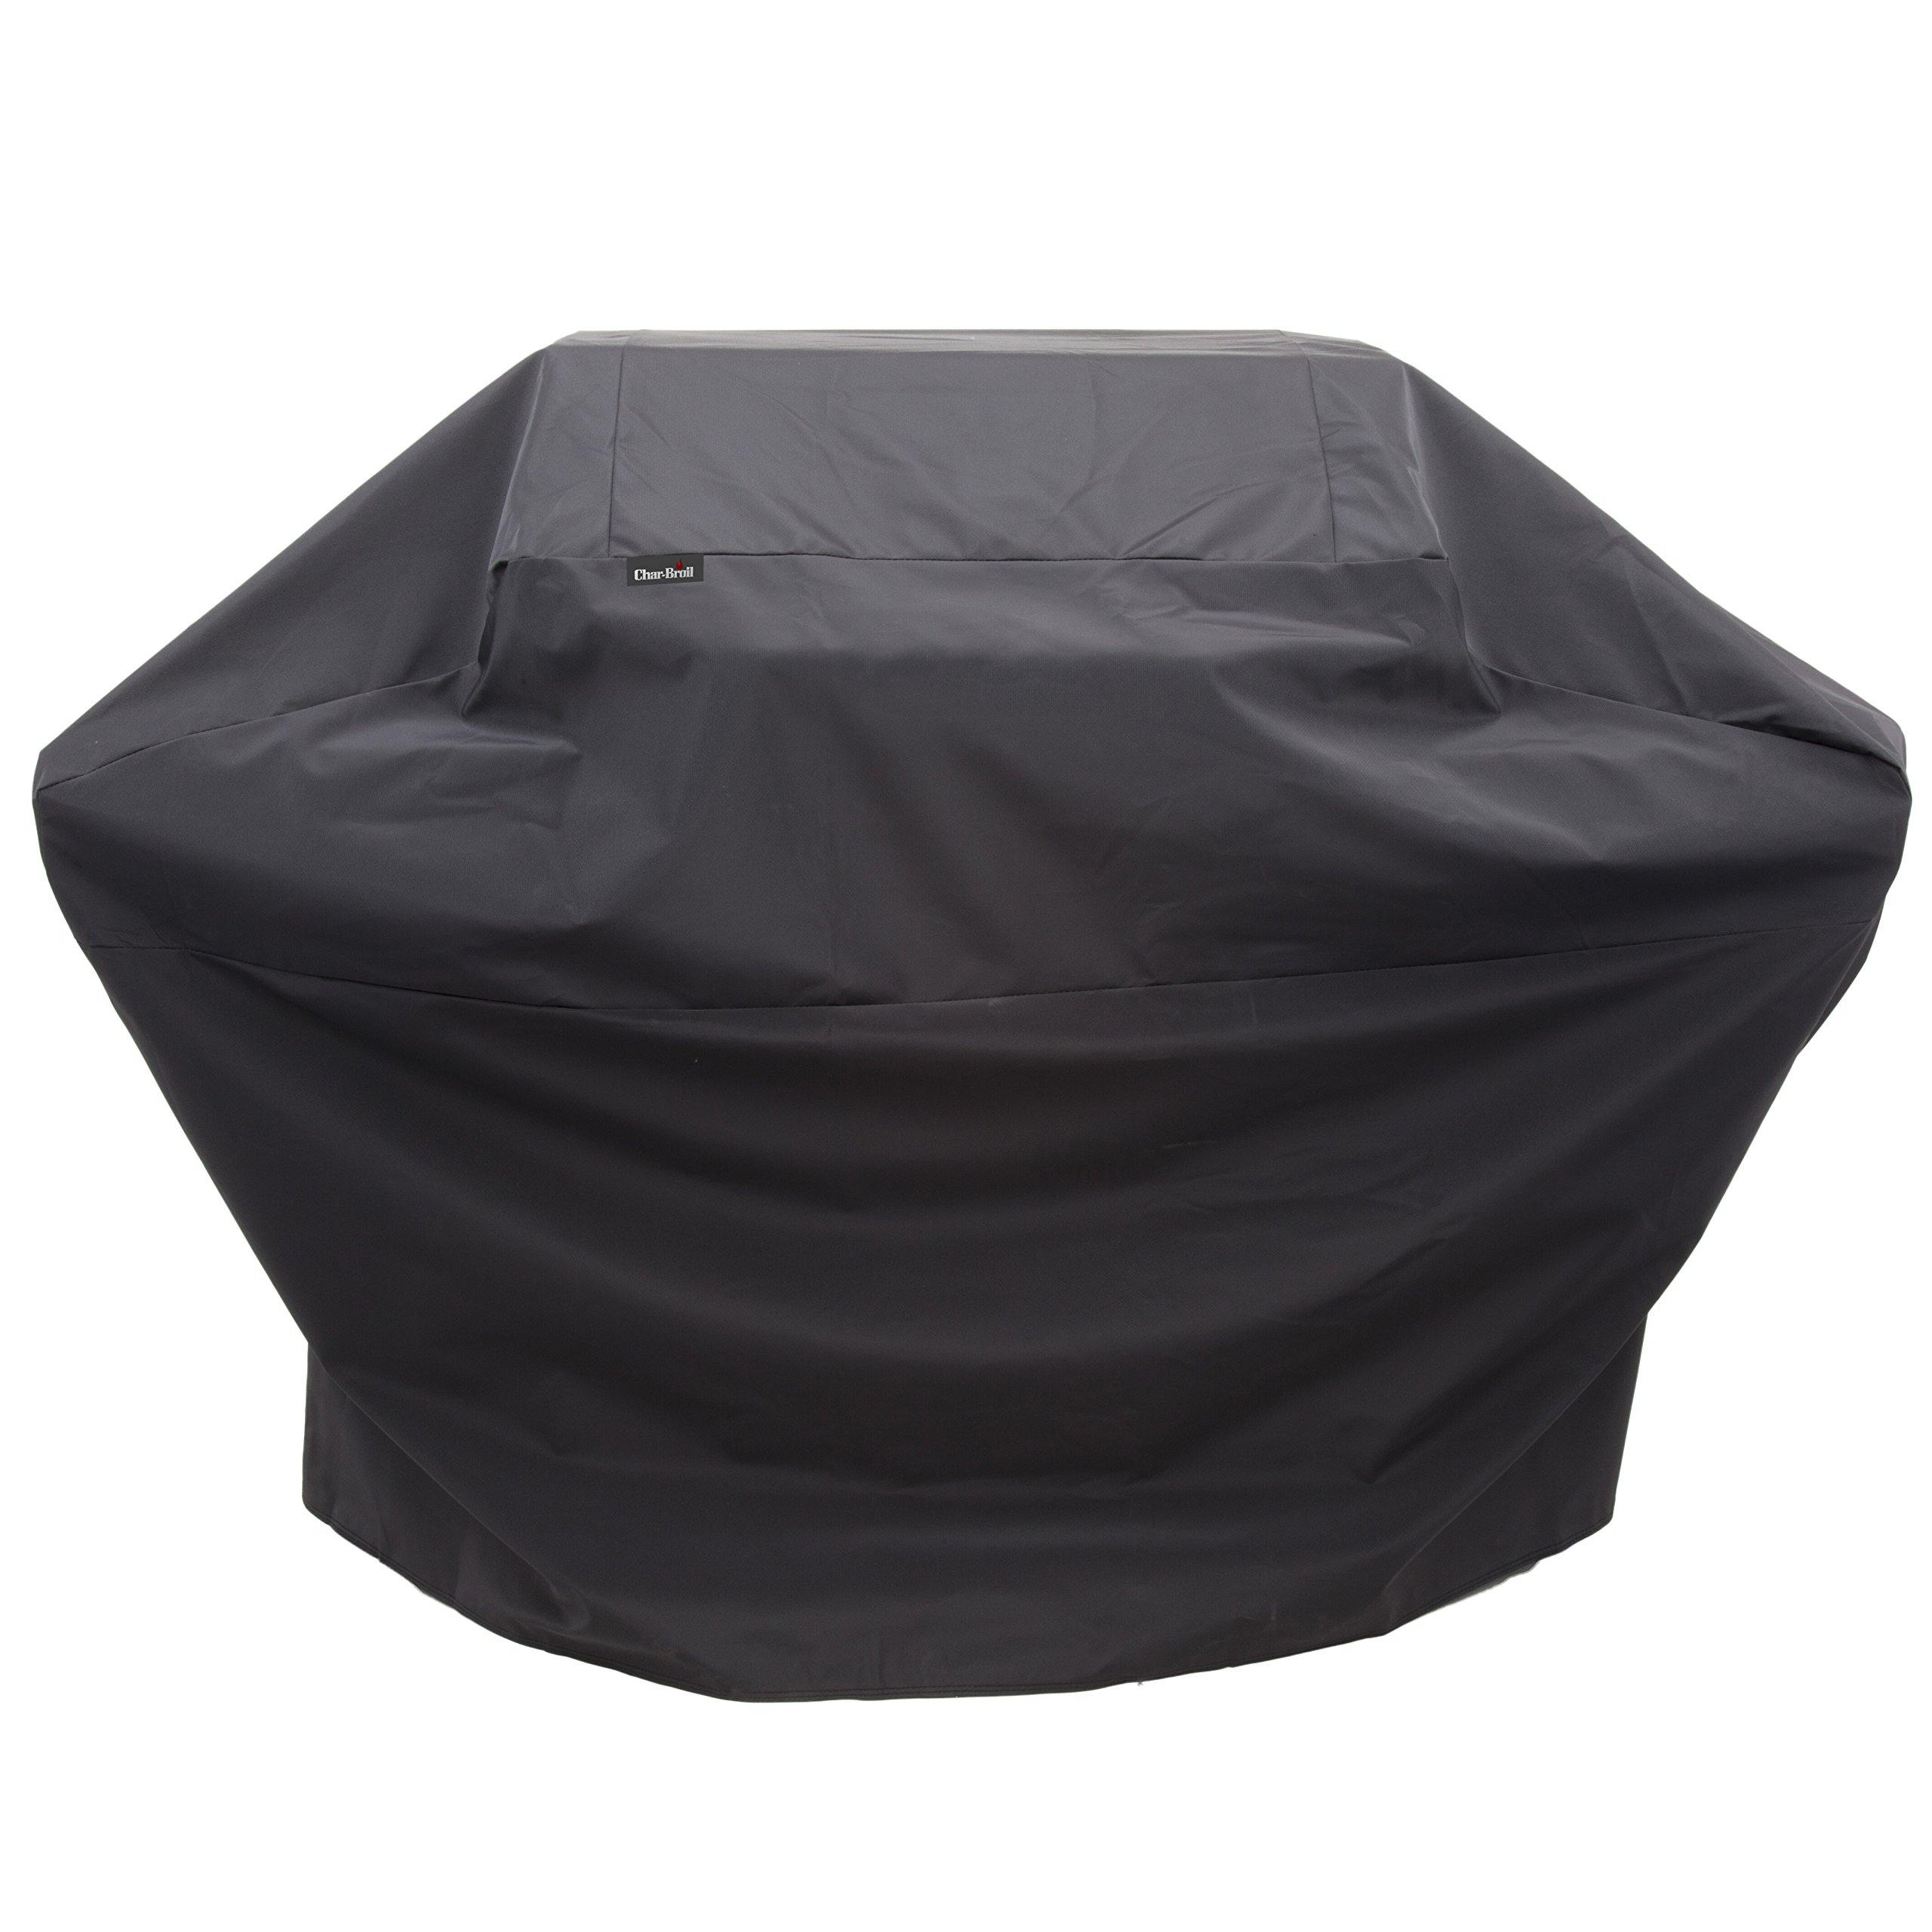 Char Broil Performance Grill Cover, 5+ Burner: Extra Large by Char-Broil